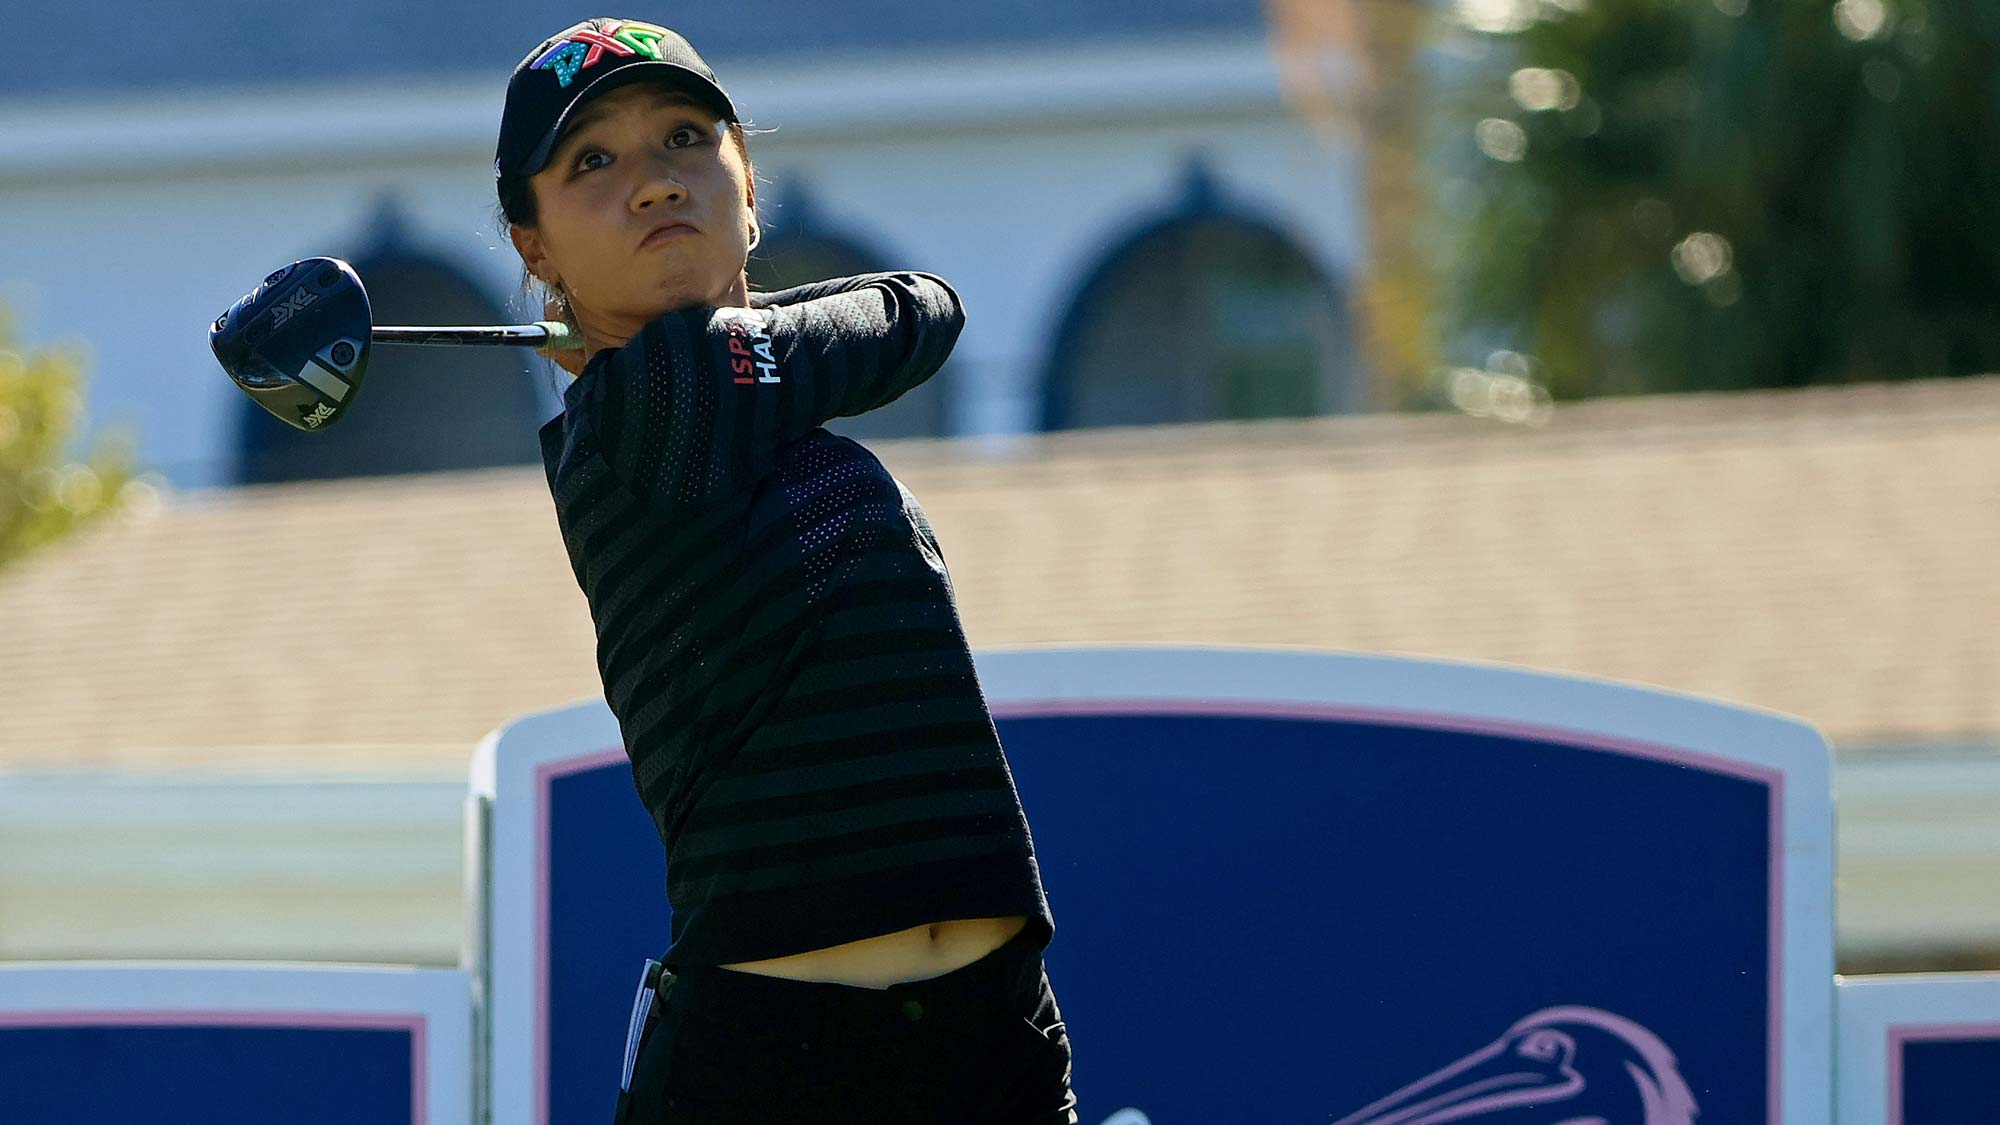 Lydia Ko hits her tee shot on the fifth hole during the second round of the Pelican Women's Championship